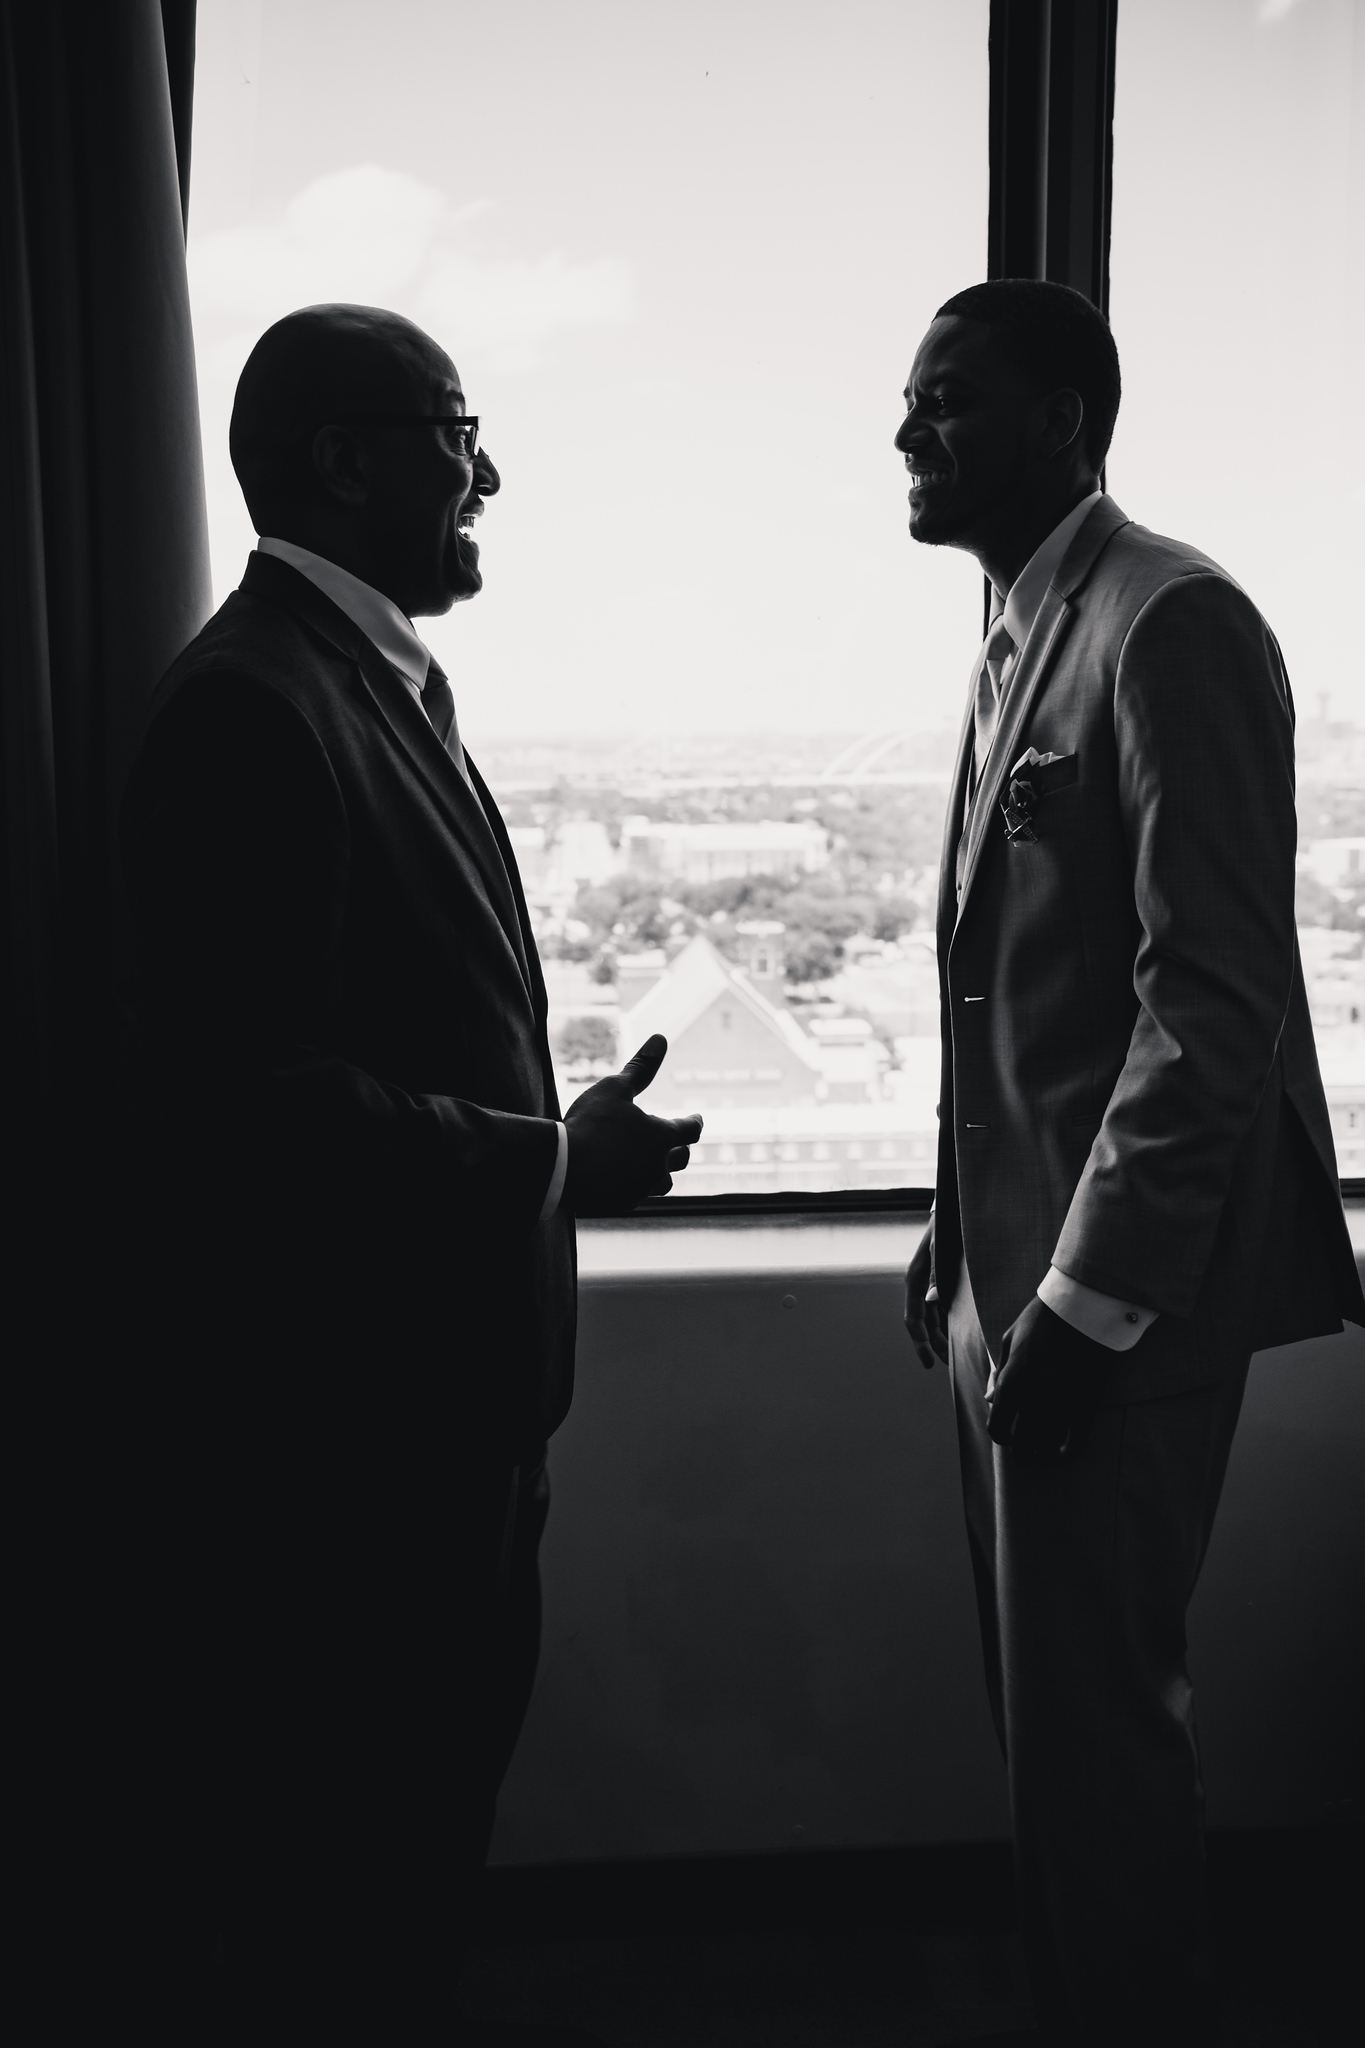 father and son talking while looking out a window overlooking Dallas south of Downtown